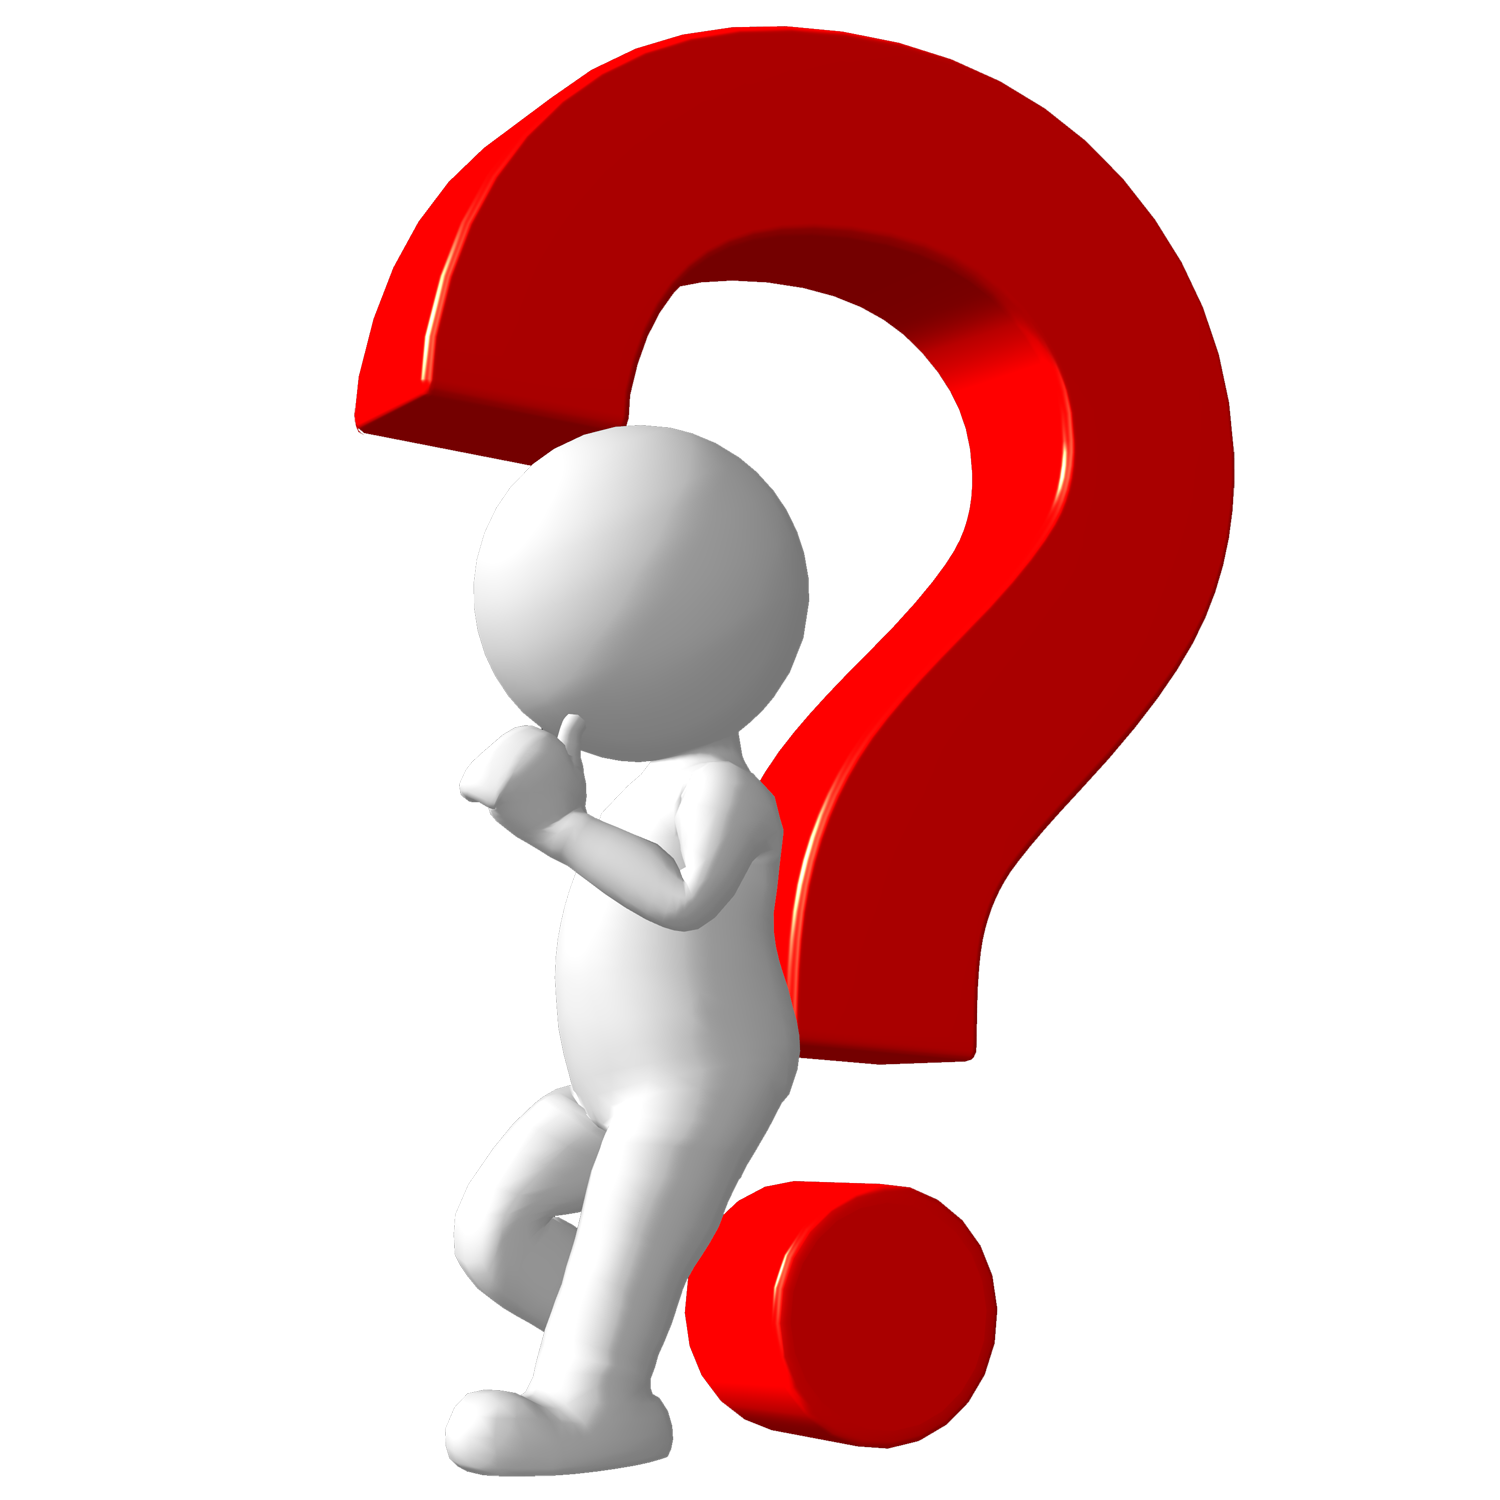 Cliparts about questions kid. Free clipart question